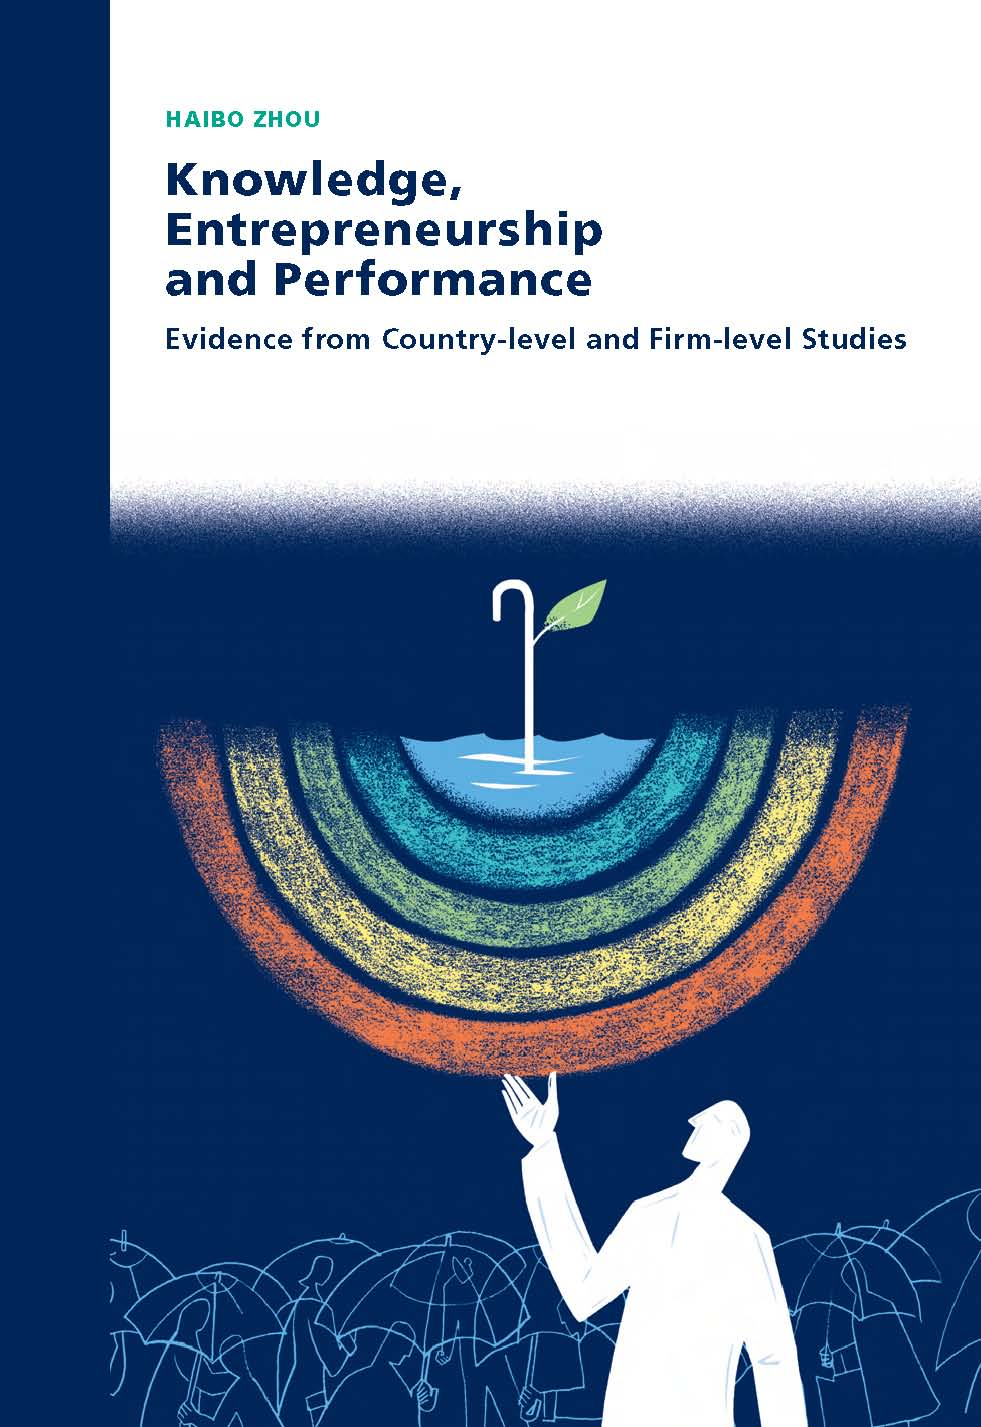 Knowledge, Entrepreneurship and Performance: Evidence from country-level and firm-level studies